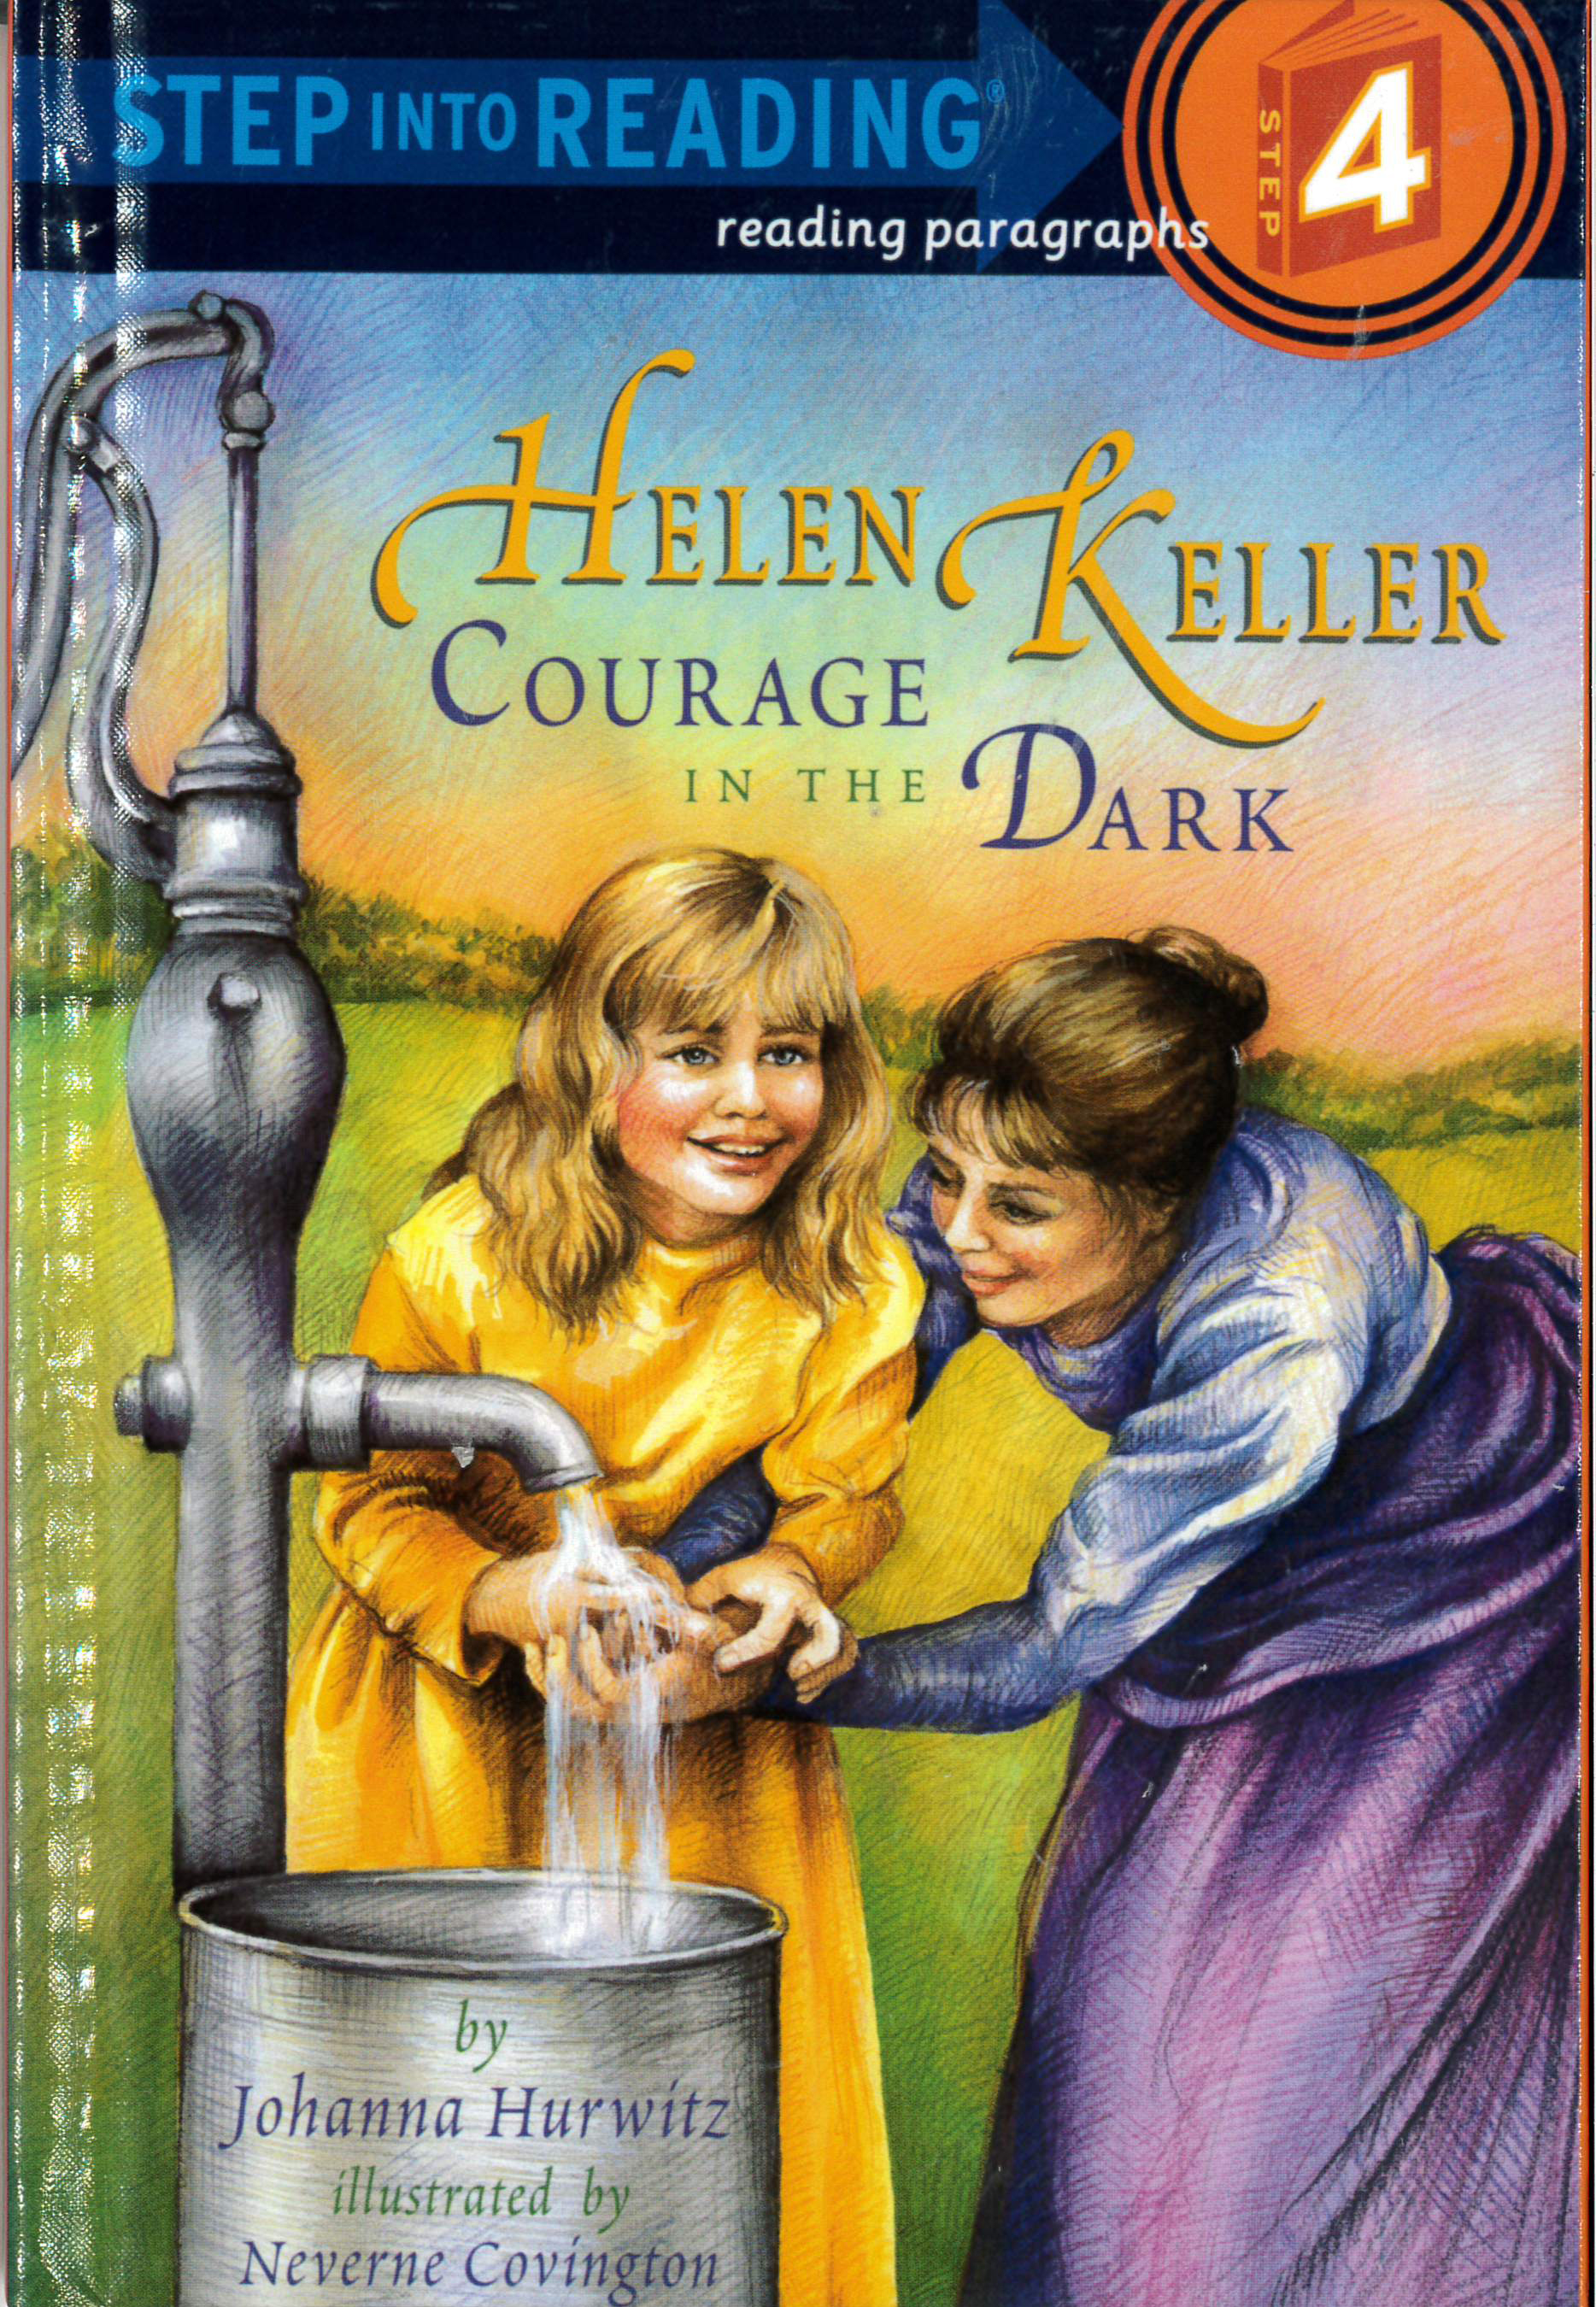 Pathways 2.0: Grade 2 Helen Keller: Courage in the Dark Tradebook